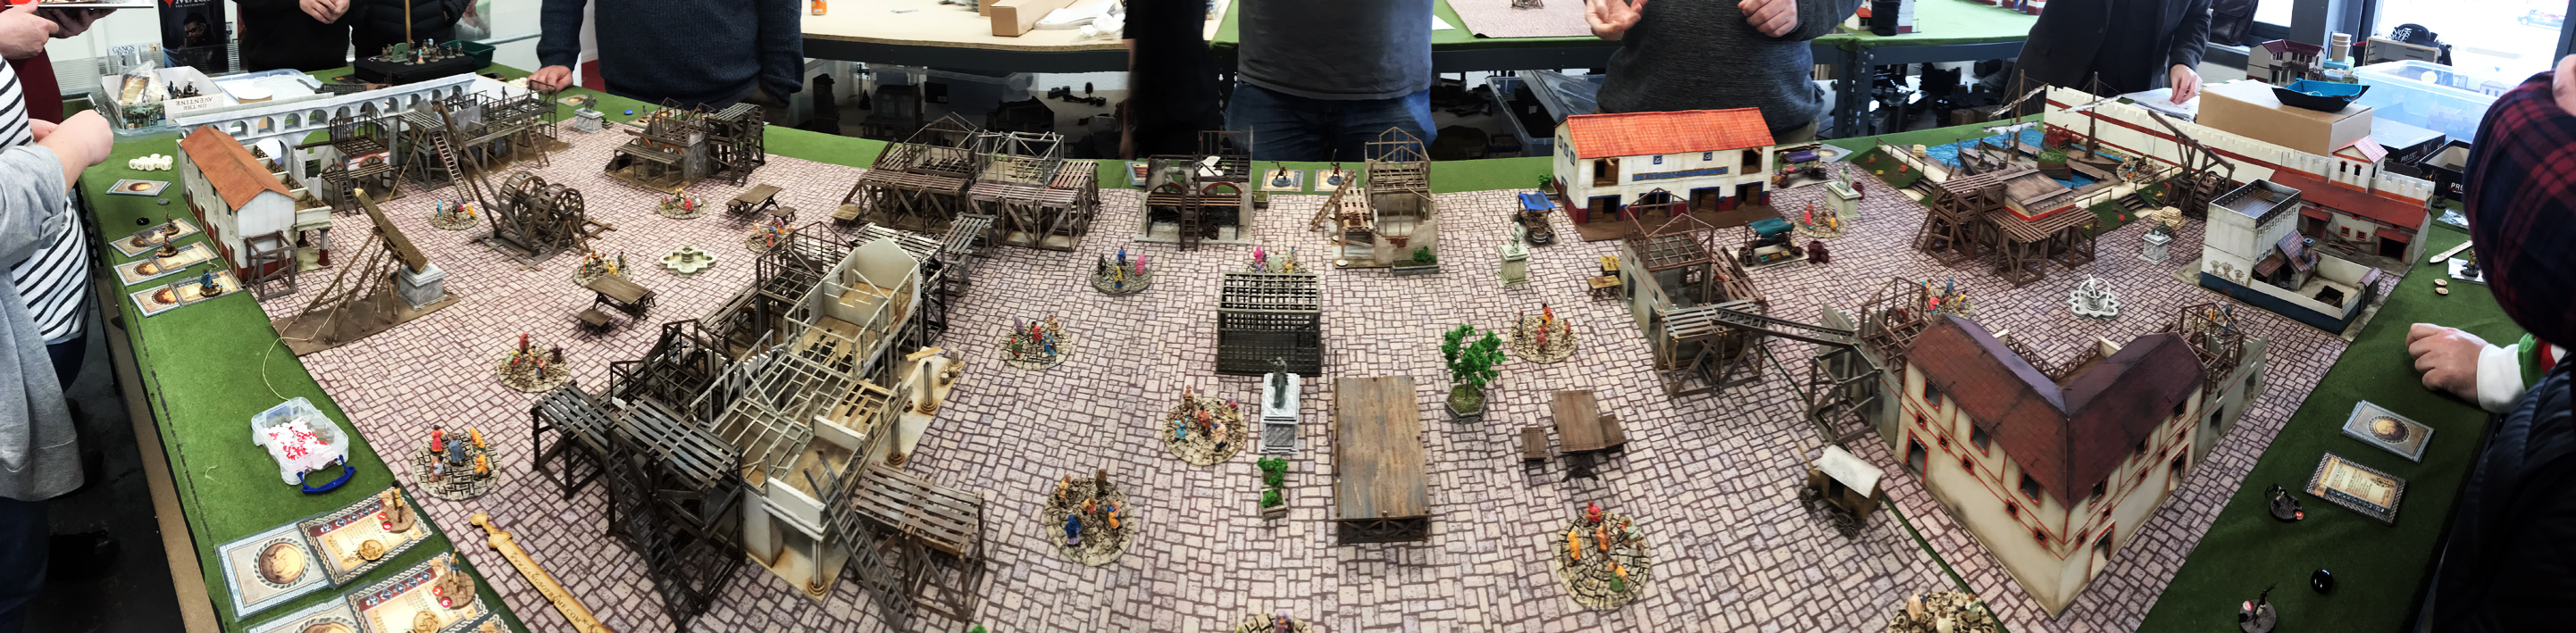 The incredible layout on which we played our final game